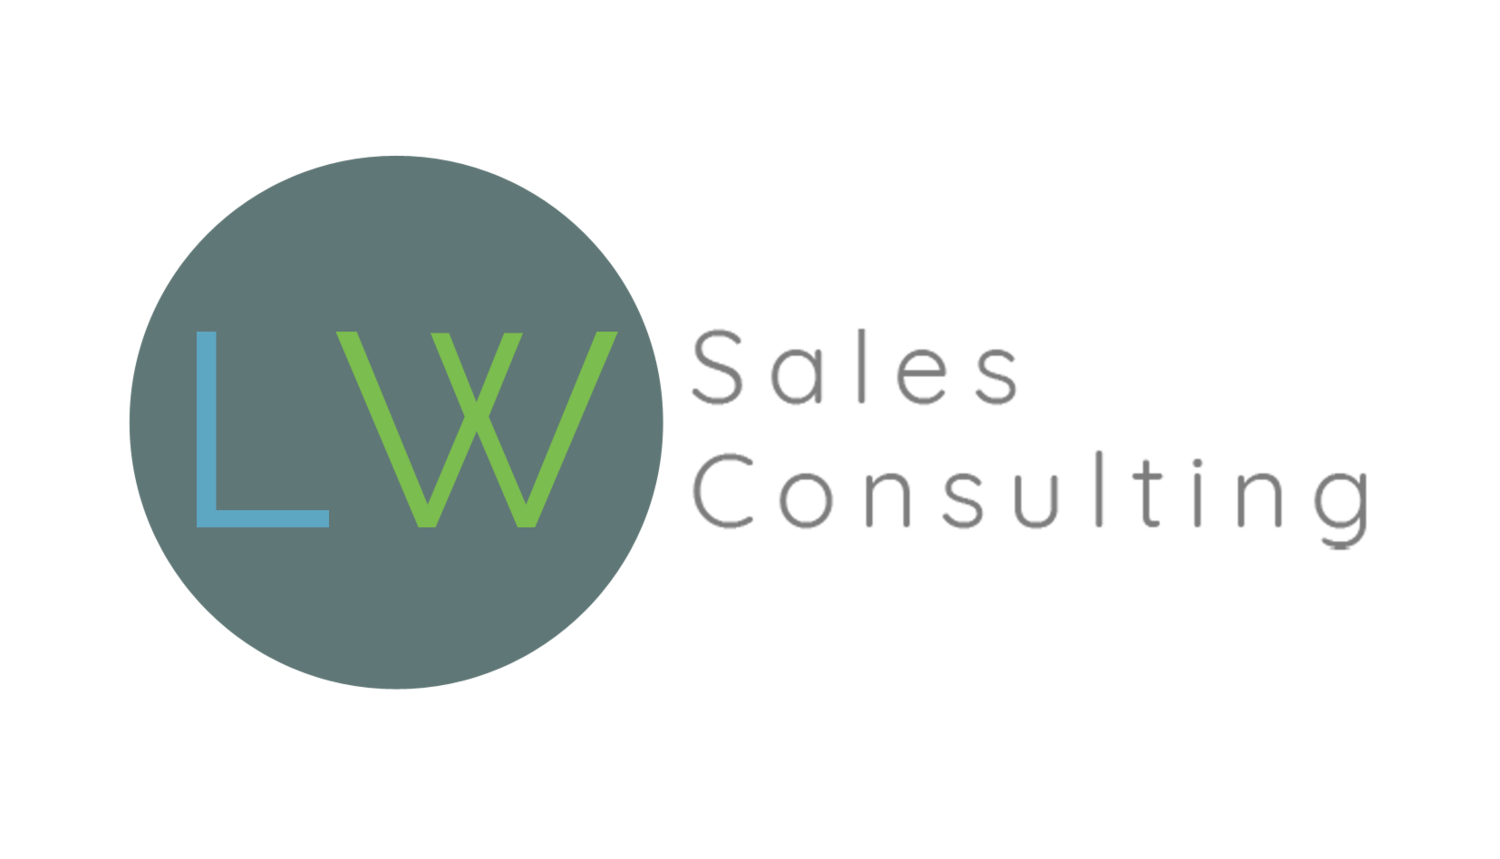 LW Sales Consulting